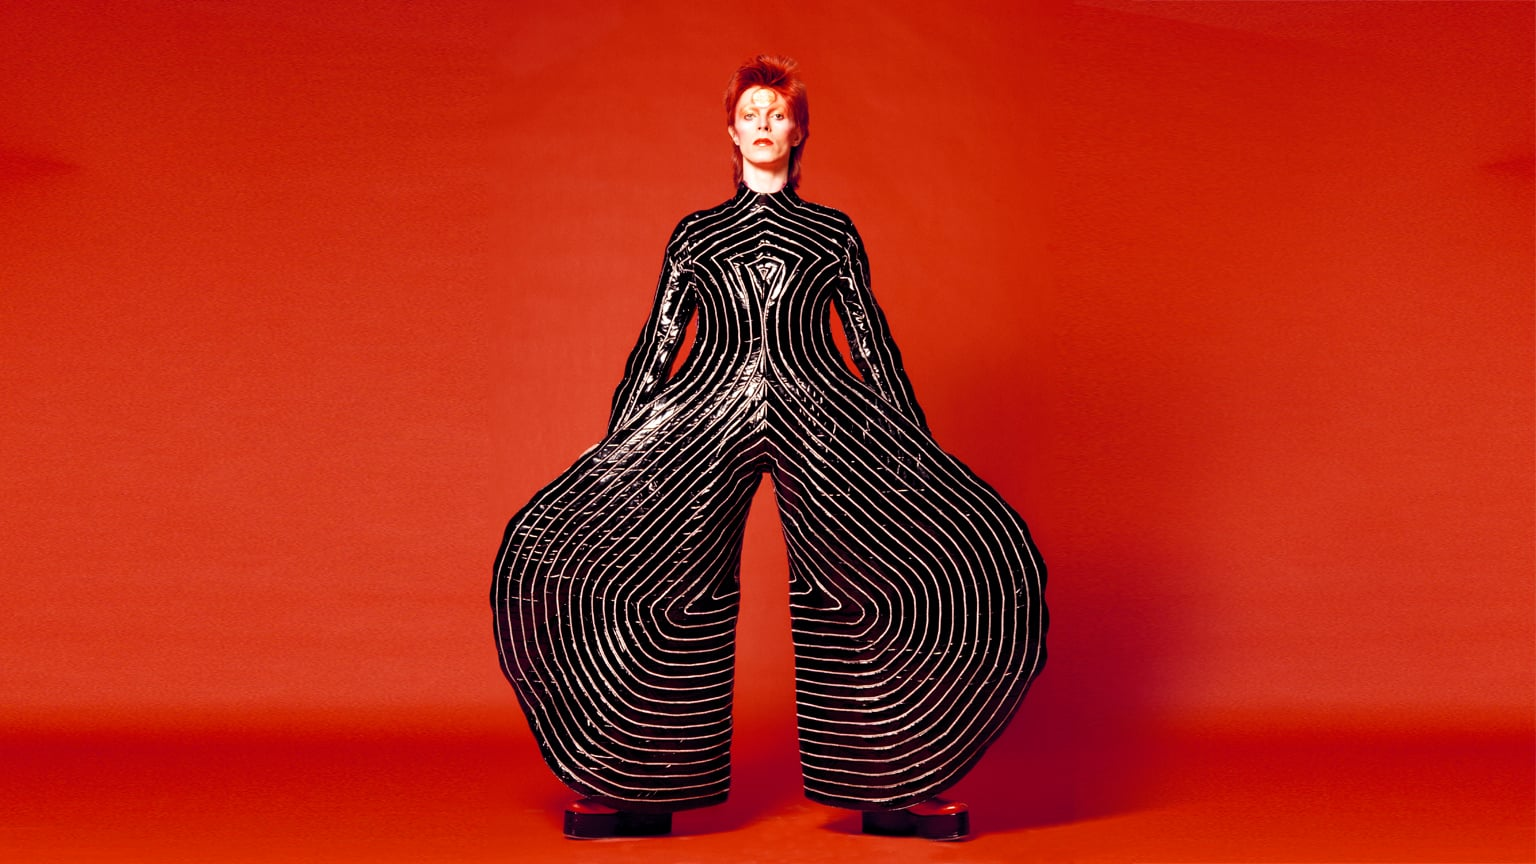 2. David Bowie is, Victoria and Albert Museum - 50% off with National Art Pass